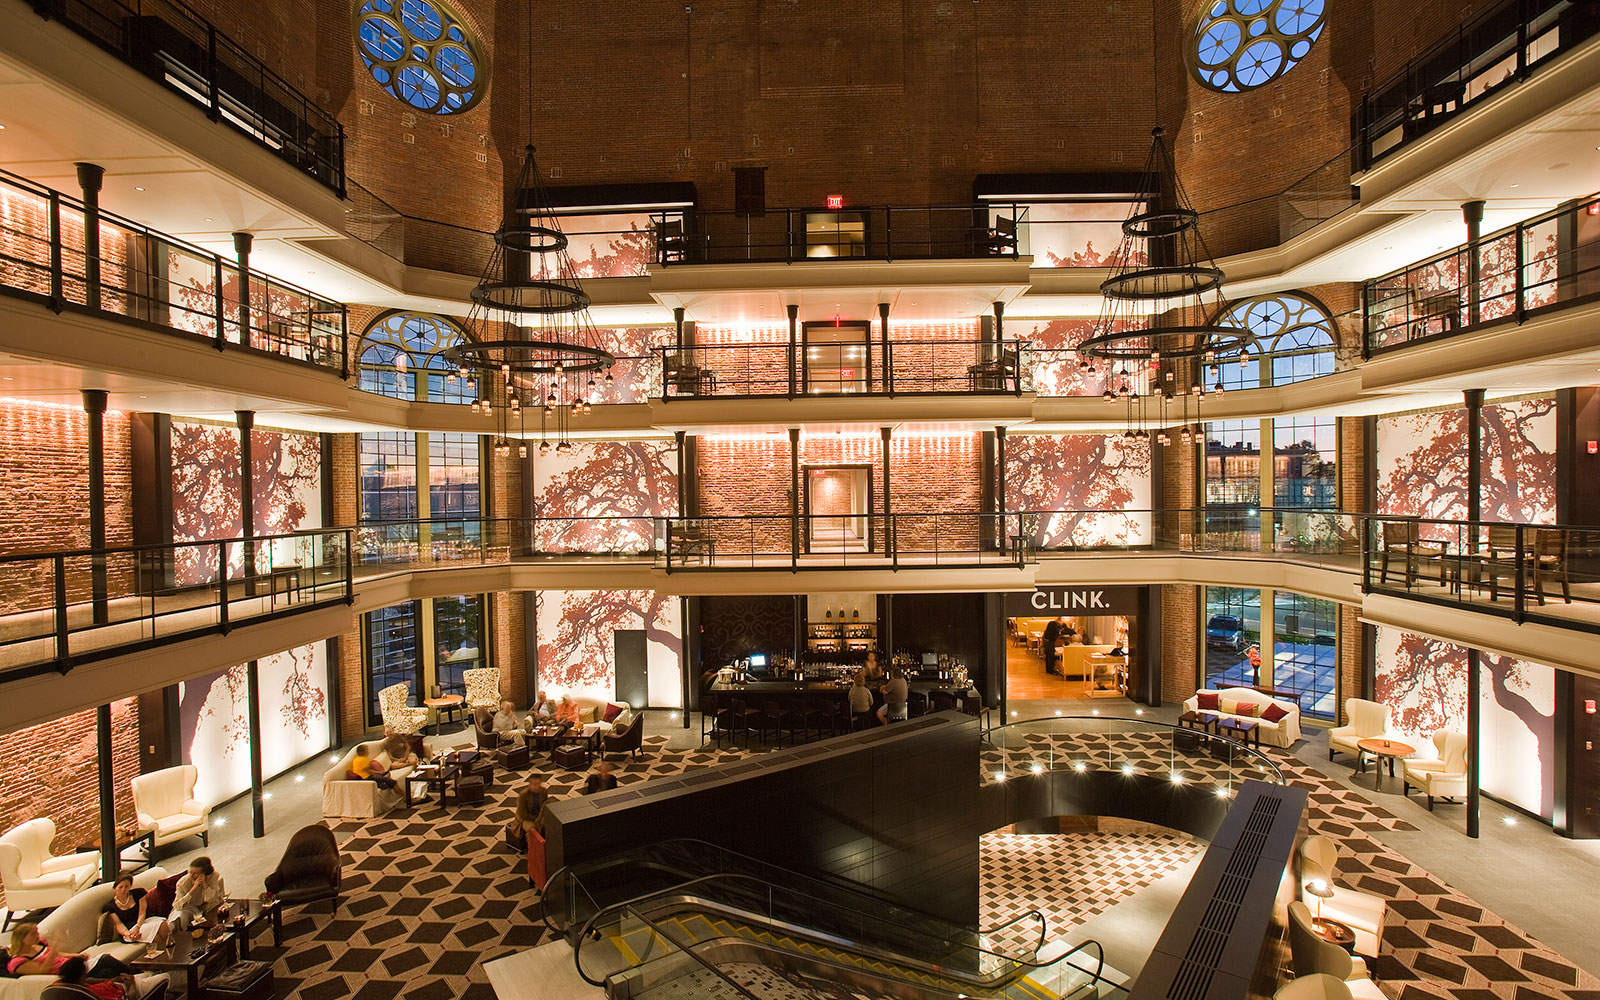 World's Most Unusual Hotels: Liberty Hotel